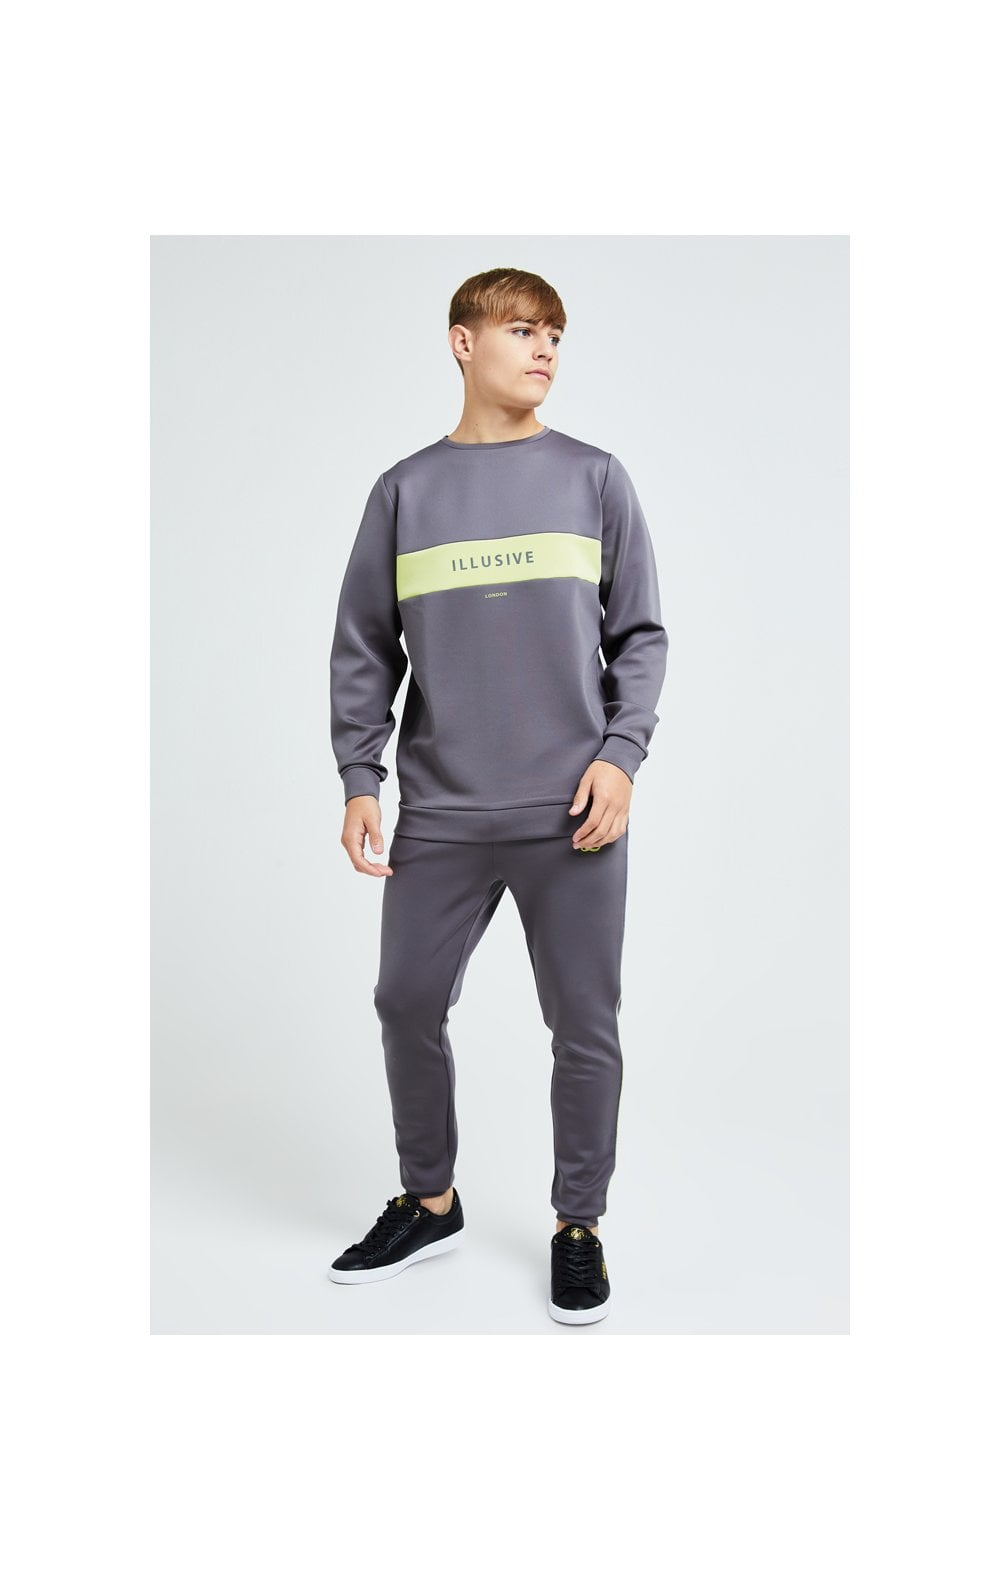 Load image into Gallery viewer, Illusive London Blaze Crew Sweater - Dark Grey & Lime (2)